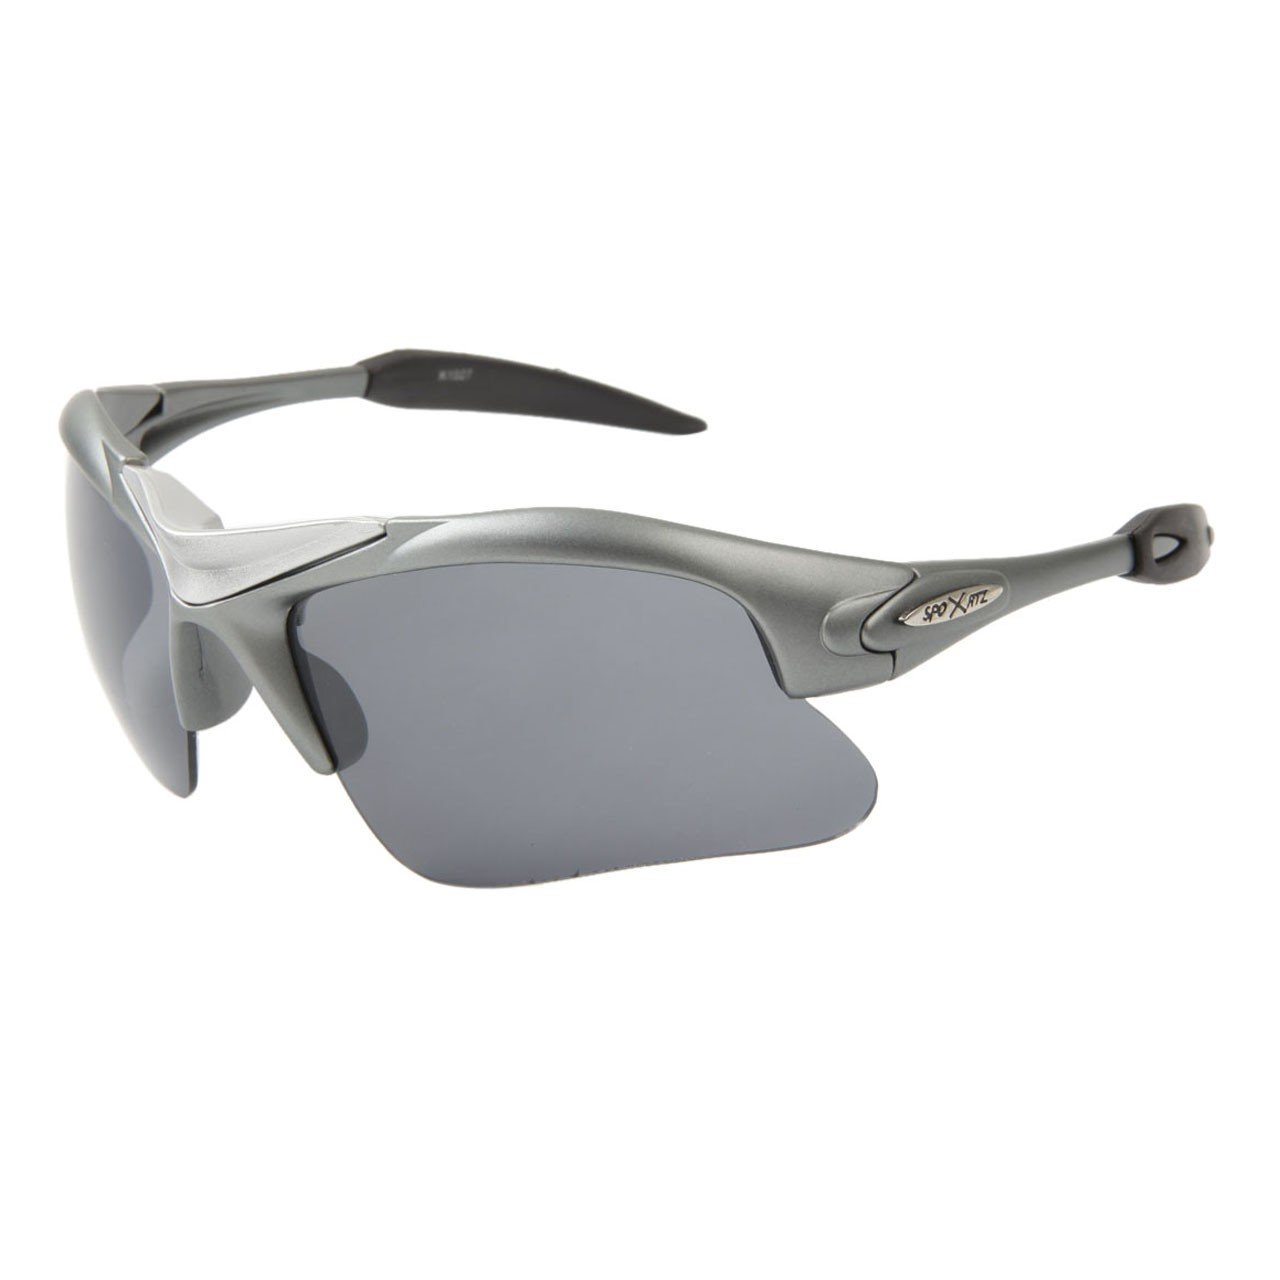 Xsportz High Profile Runners Cycling Gafas De Sol Sunglasses